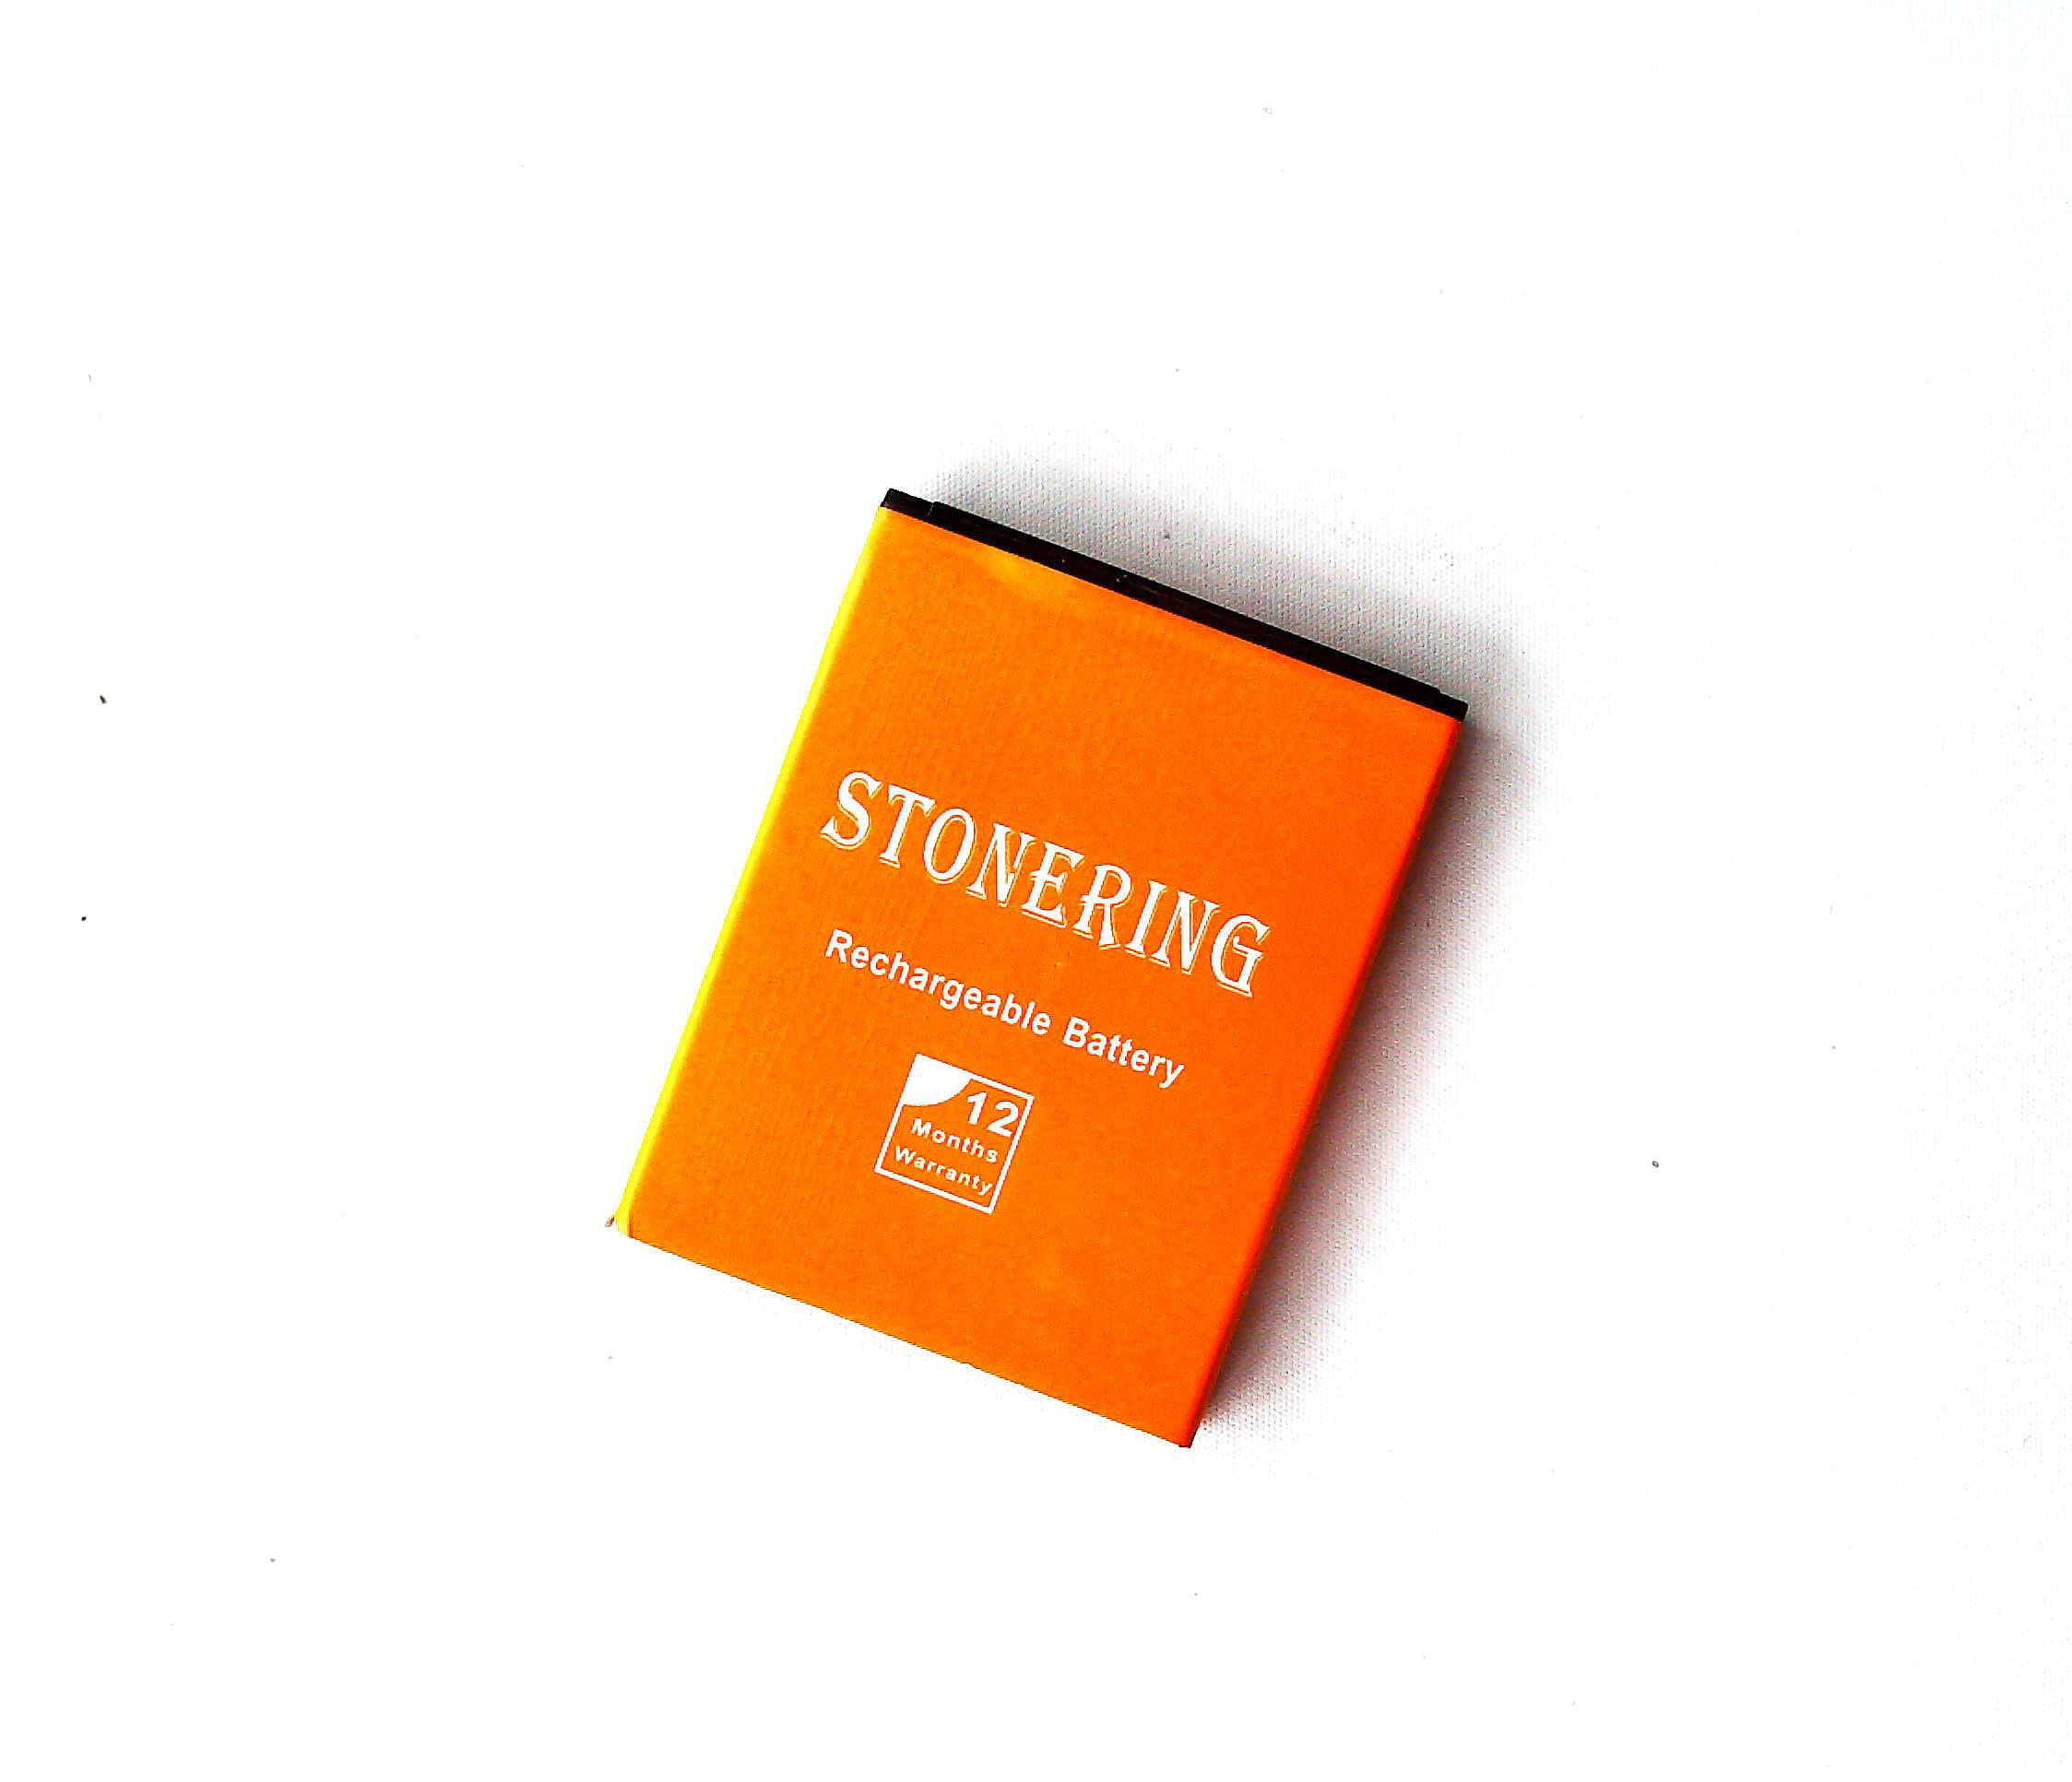 Stonering battery 2000mAh AC50PL Replacement Battery for Archos 50 Platinum cellphone